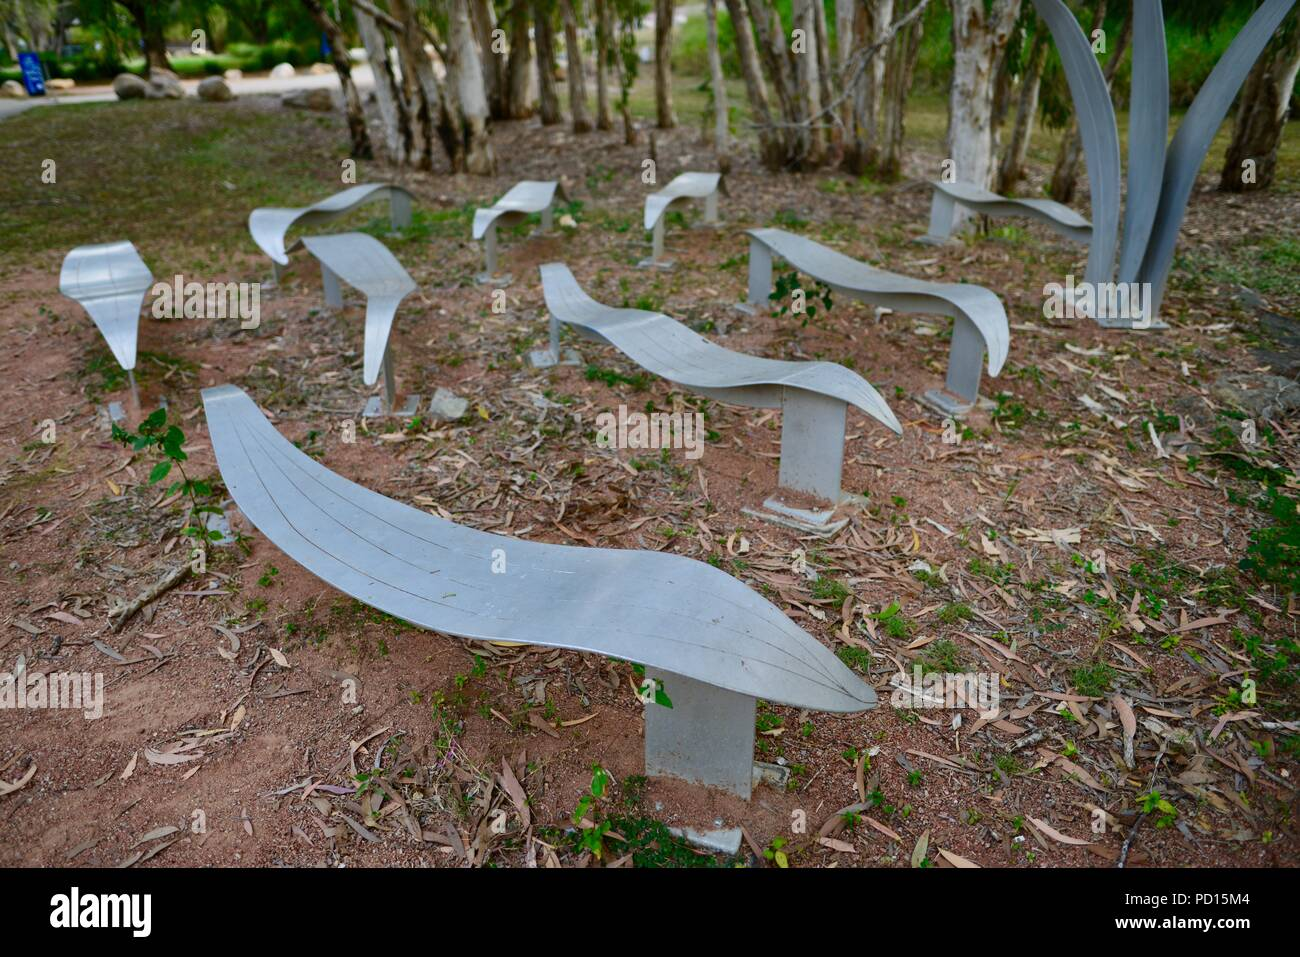 Artwork in the Apex park, Booroona walking trail on the Ross River, Rasmussen QLD 4815, Australia - Stock Image